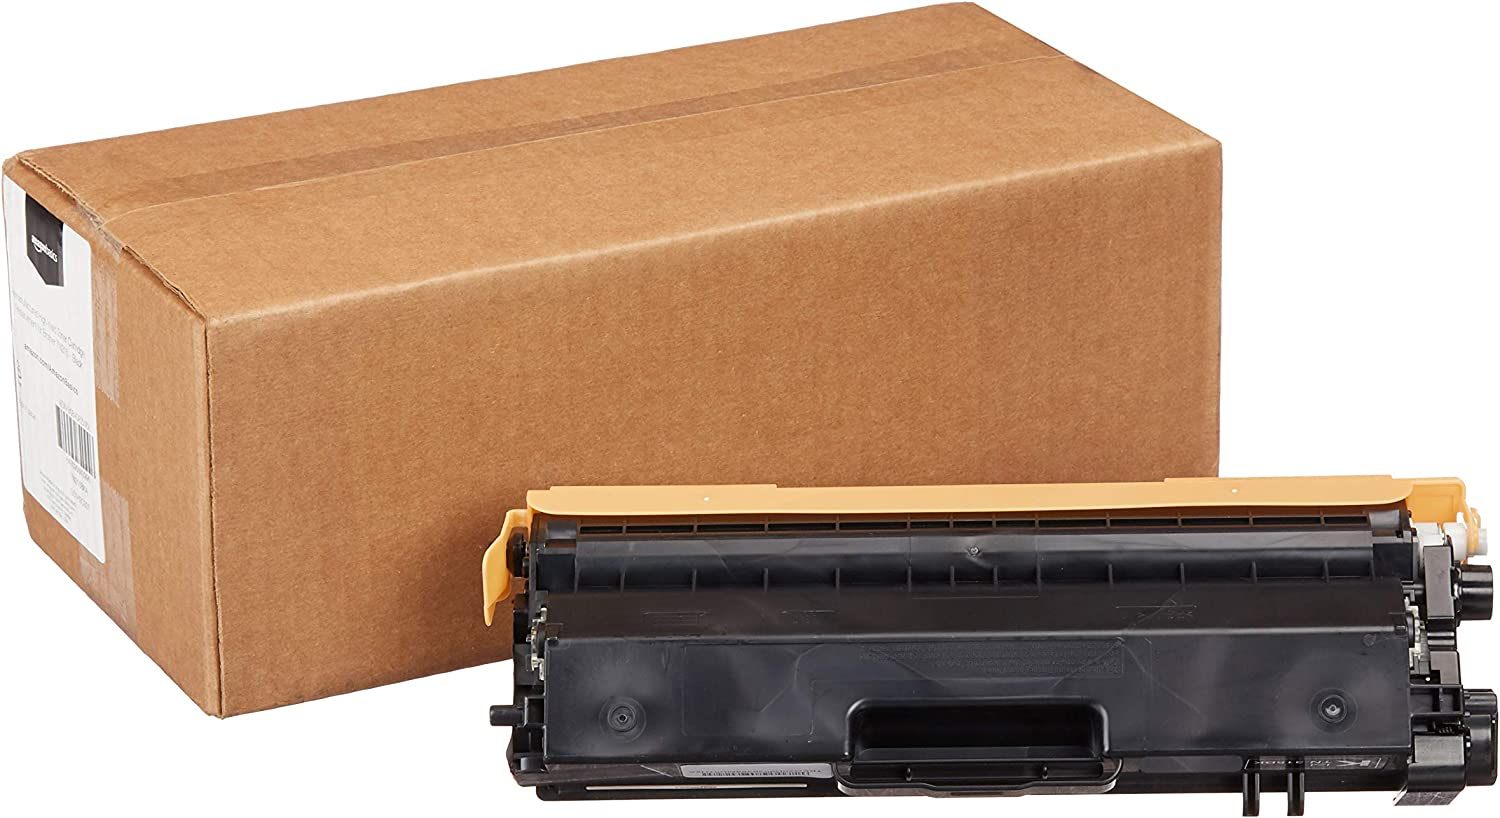 AmazonBasics Remanufactured High-Yield Toner Cartridge, Replacement for Brother TN315 - Black